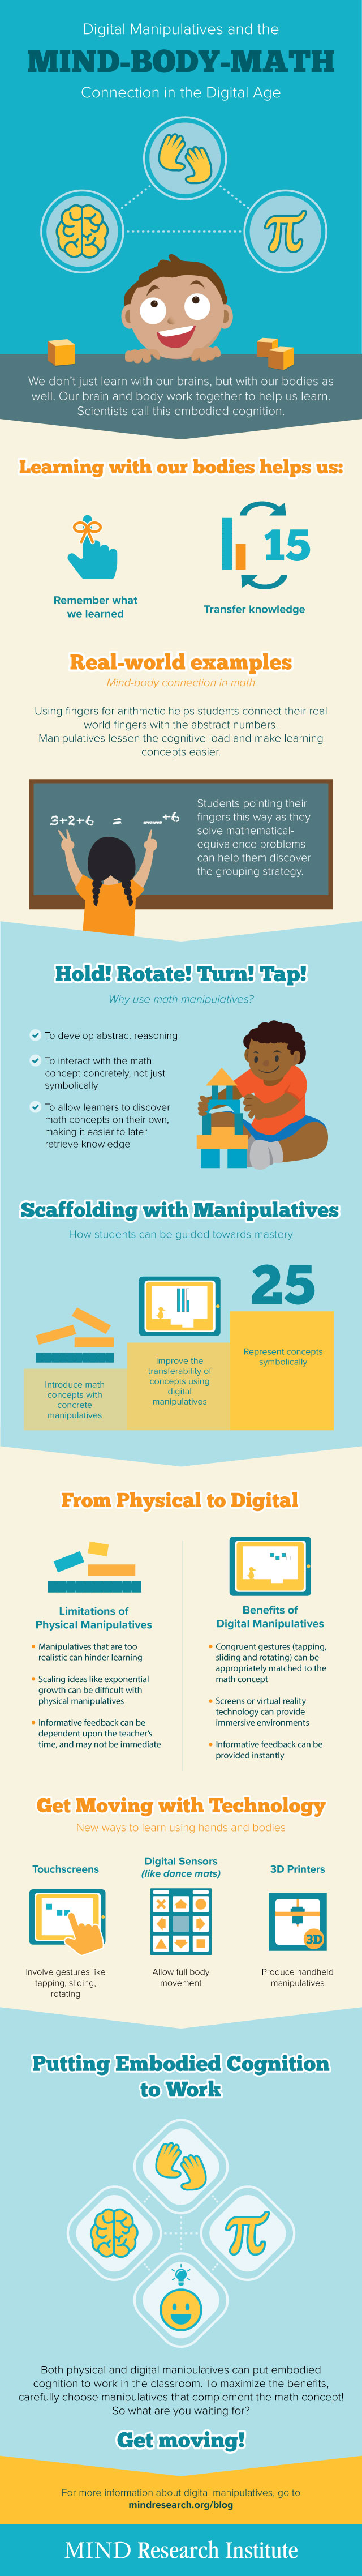 digital manipulatives infographic